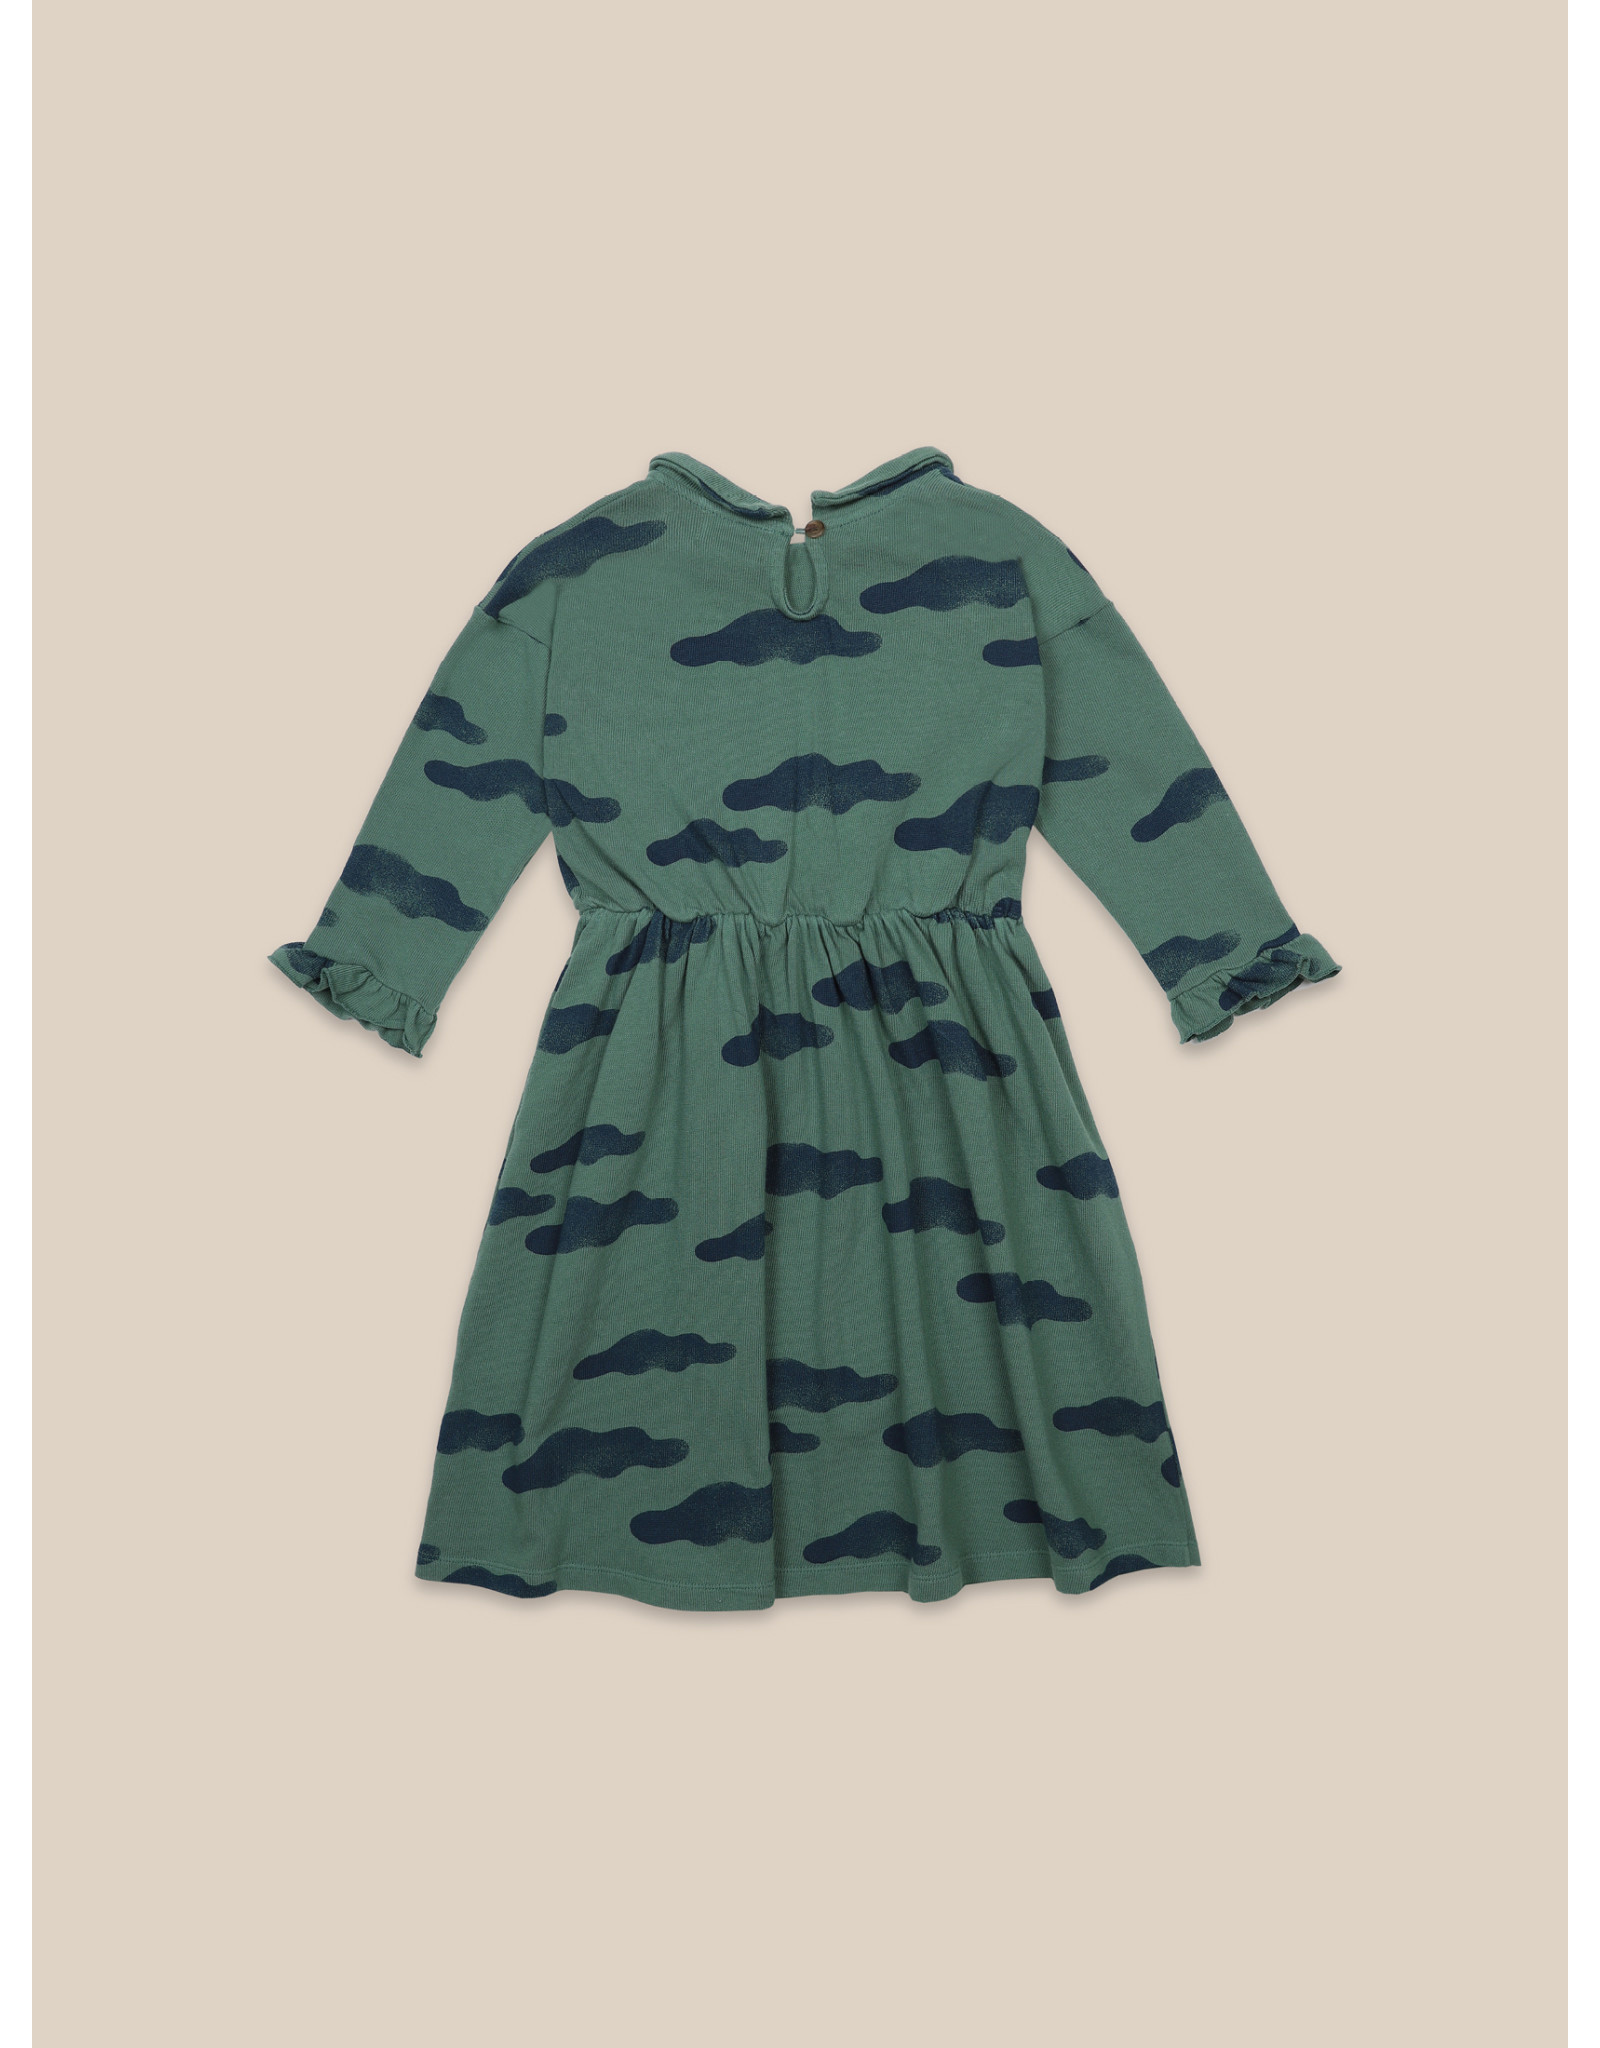 Bobo Choses Clouds all over dress